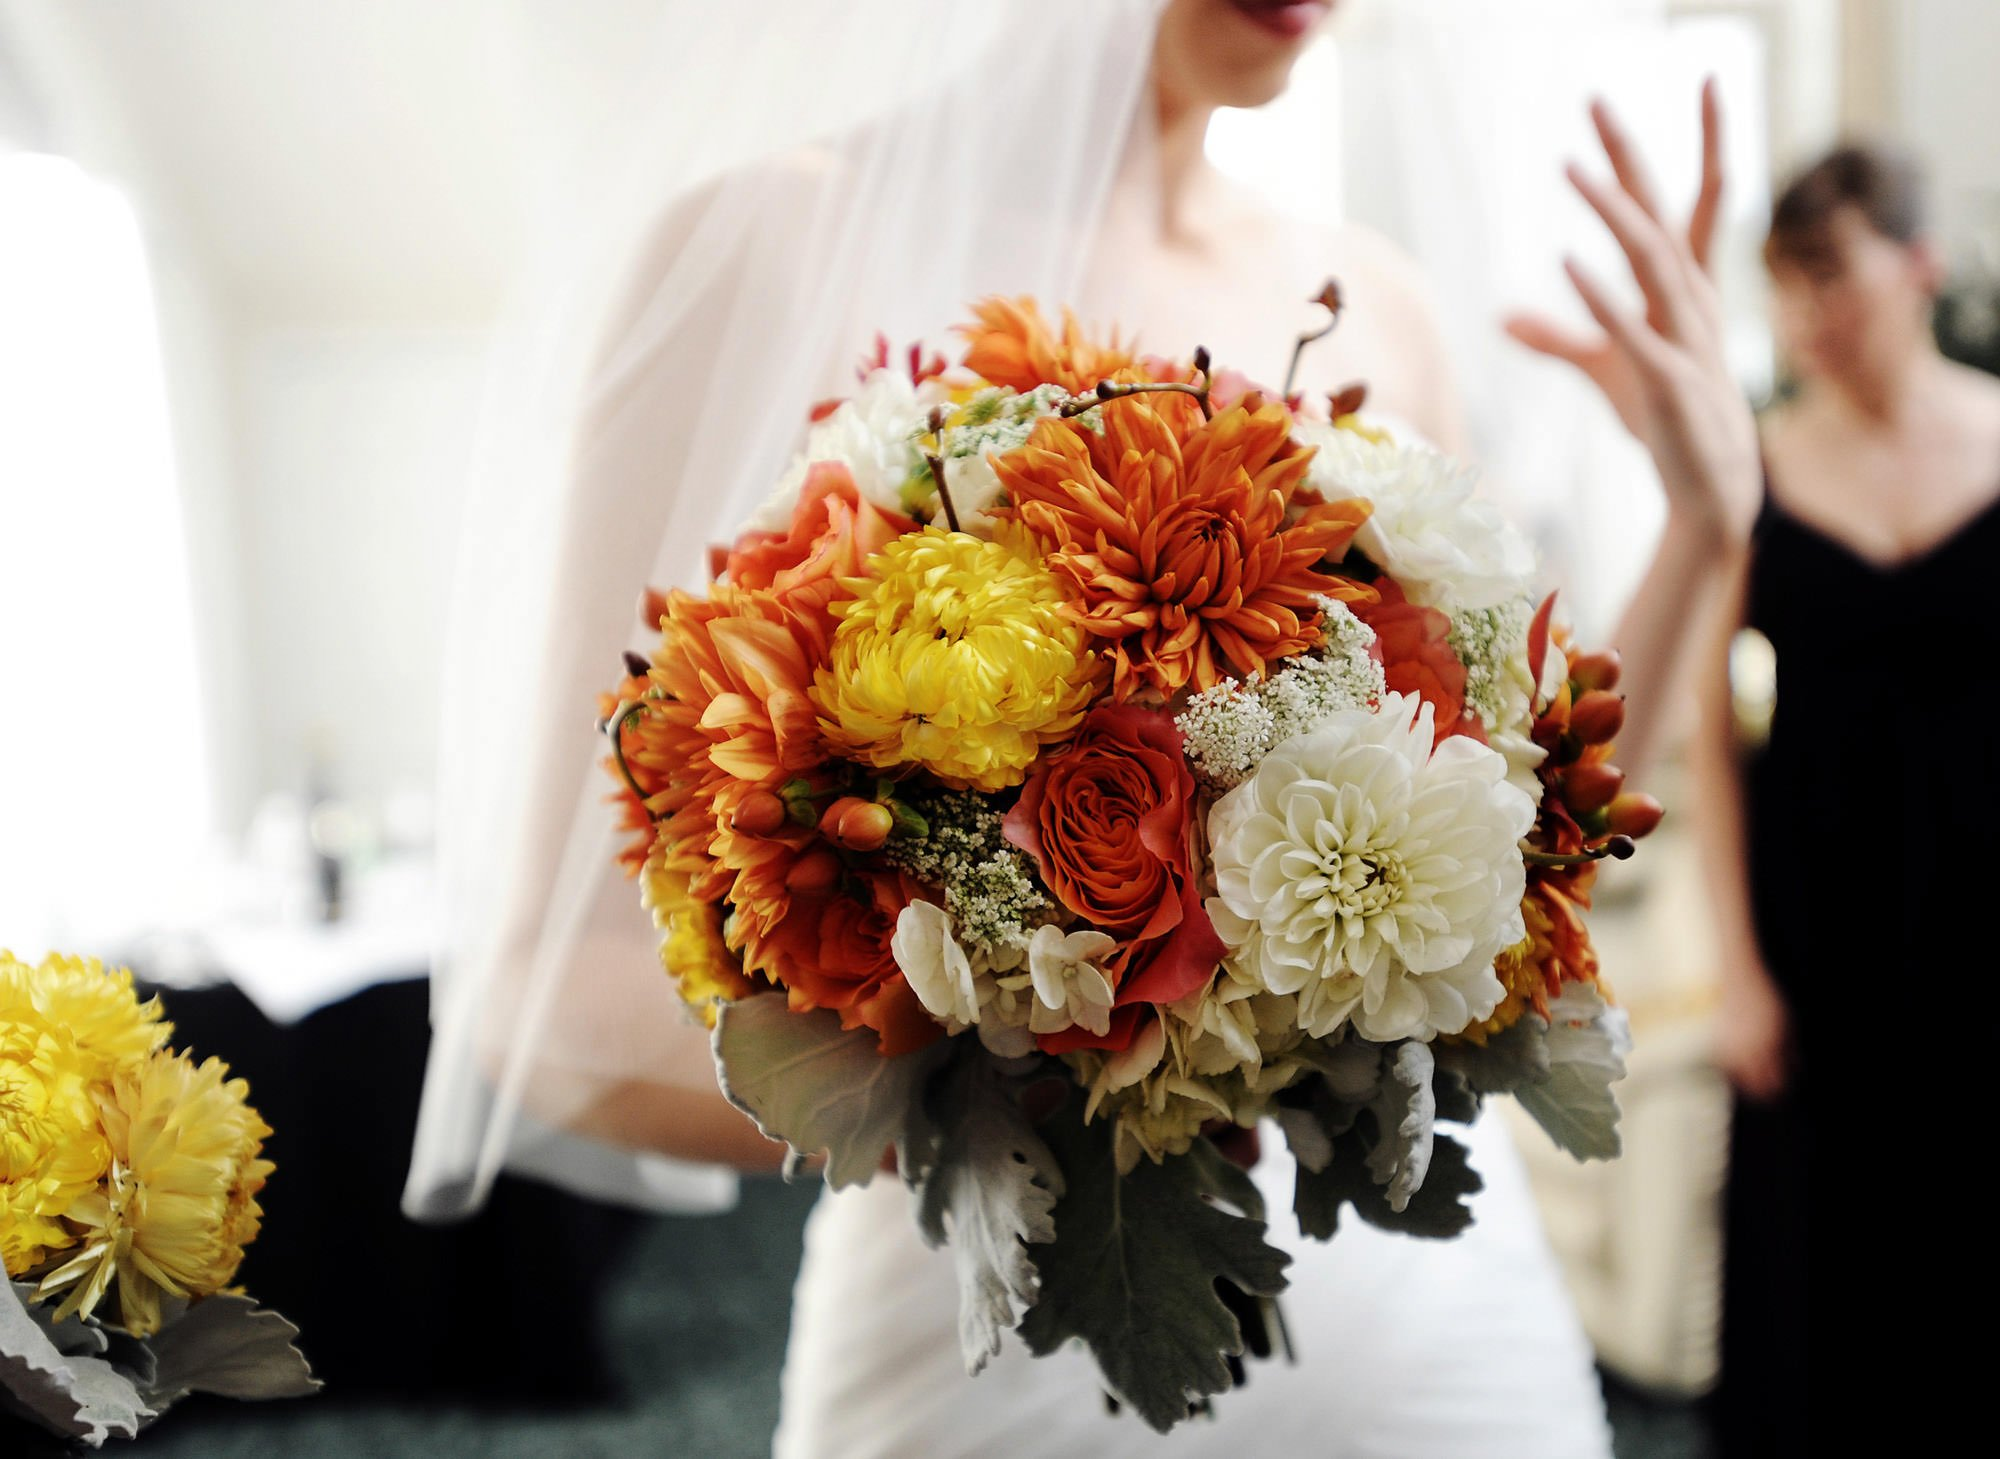 A detail of the bride's bouquet.